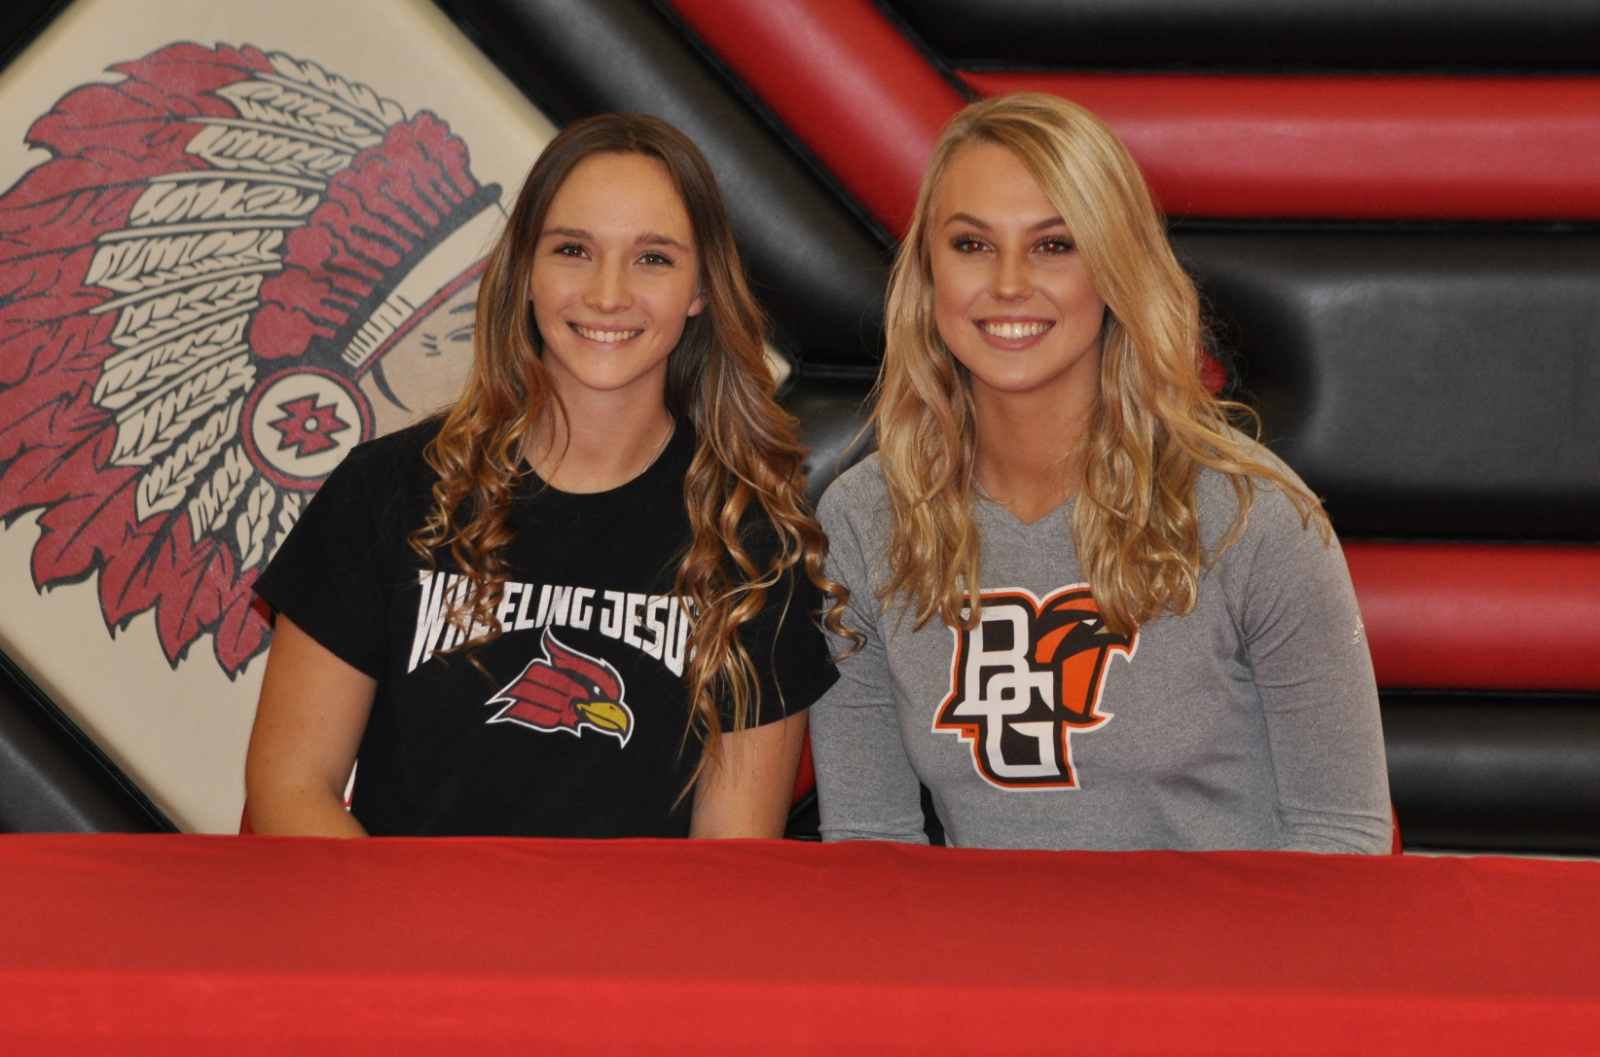 Two Athletes Commit to Pursue College Athletic Careers